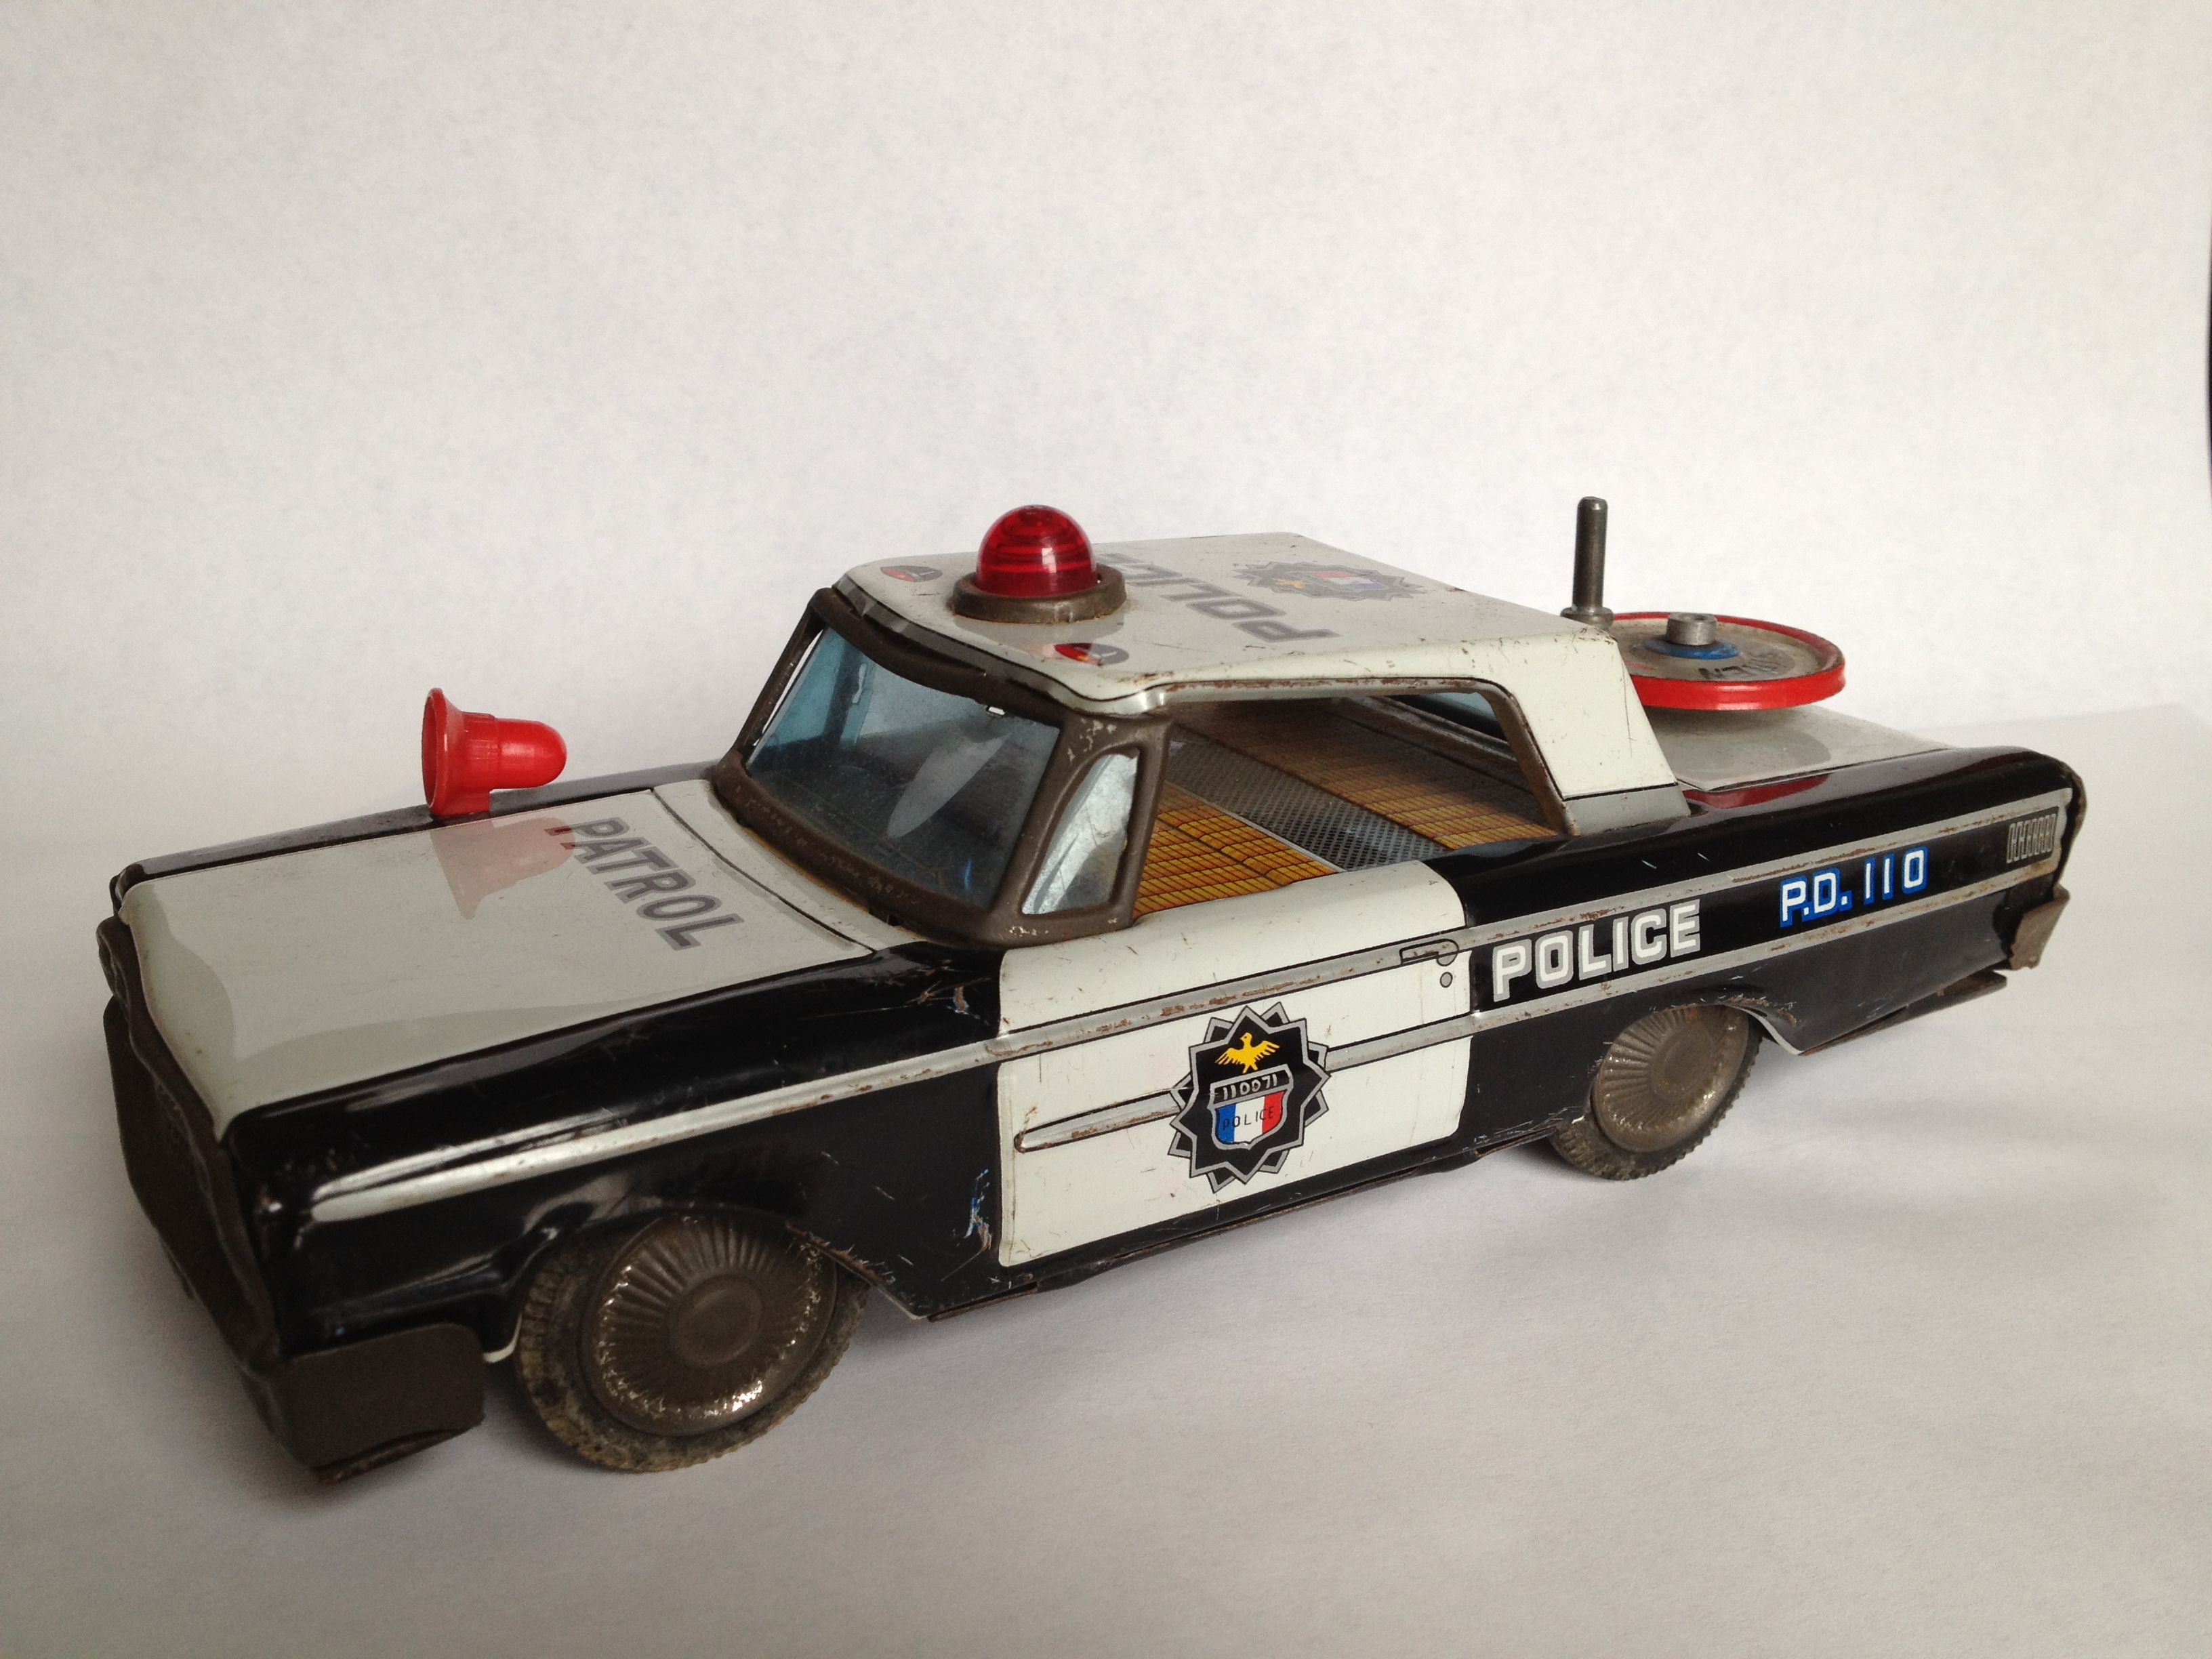 This Weekend S Find 1960 S Tin Toy Police Car Made In